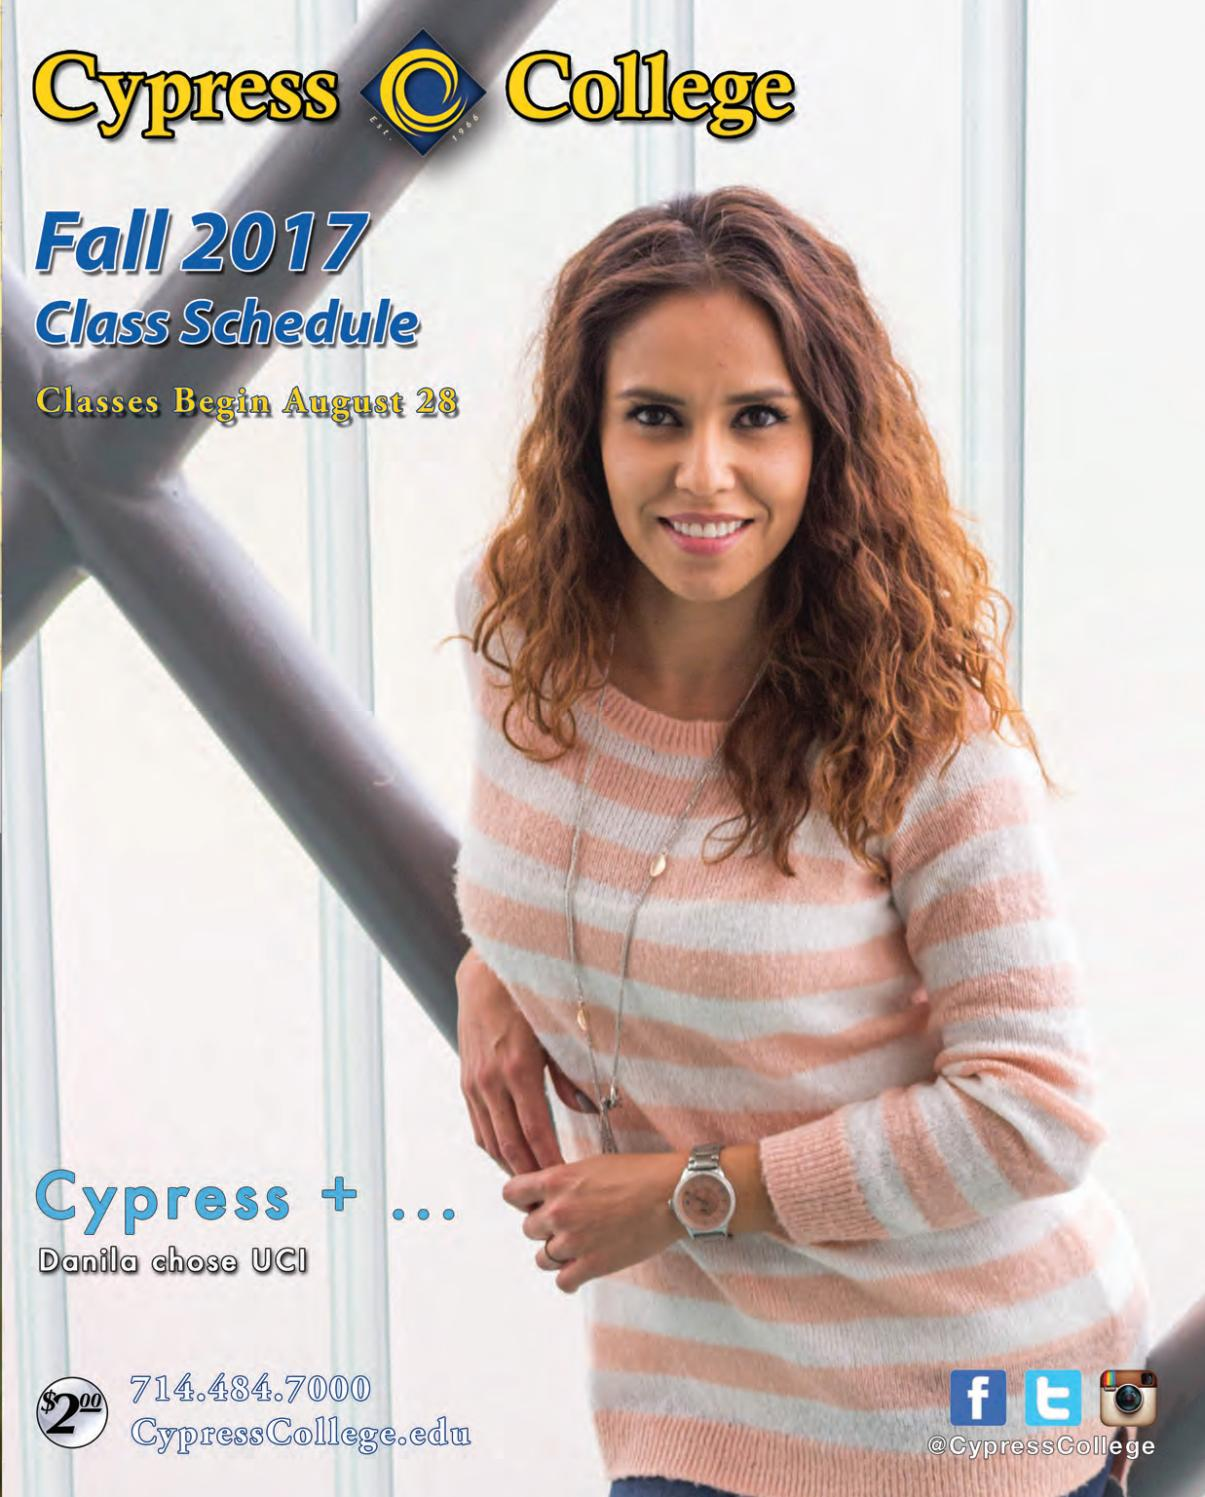 Cypress College 2017 Fall Class Schedule by Cypress College - issuu